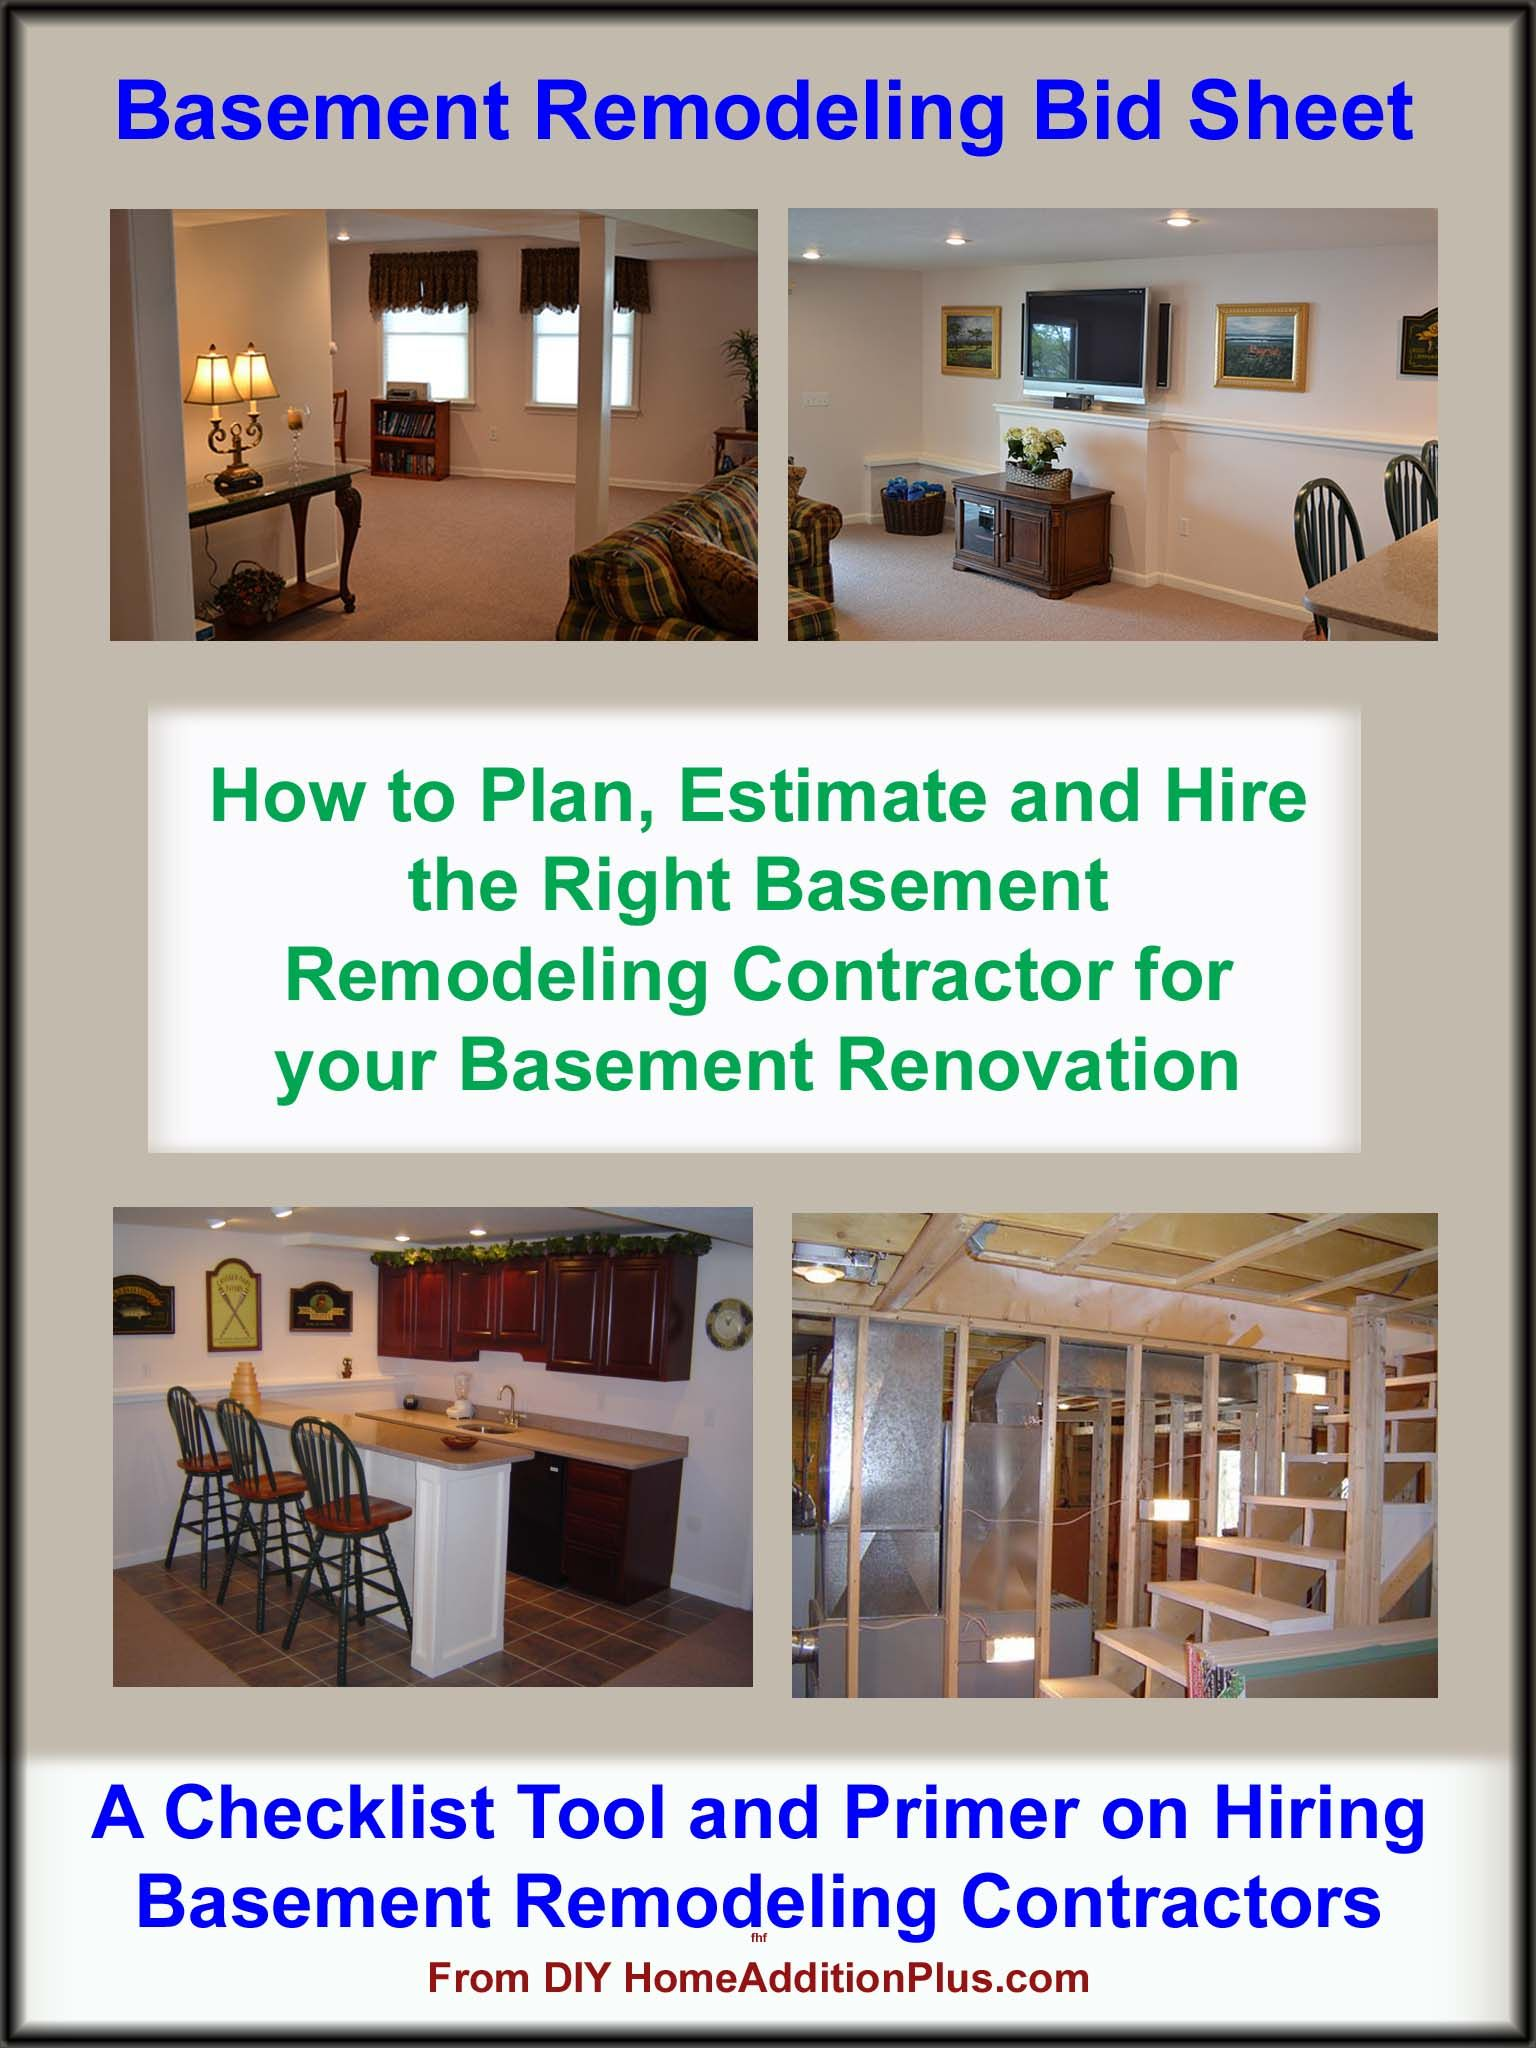 Here Is A Basement Remodeling Bid Sheet For Helping Homeowners Hire The  Right General Contractor And